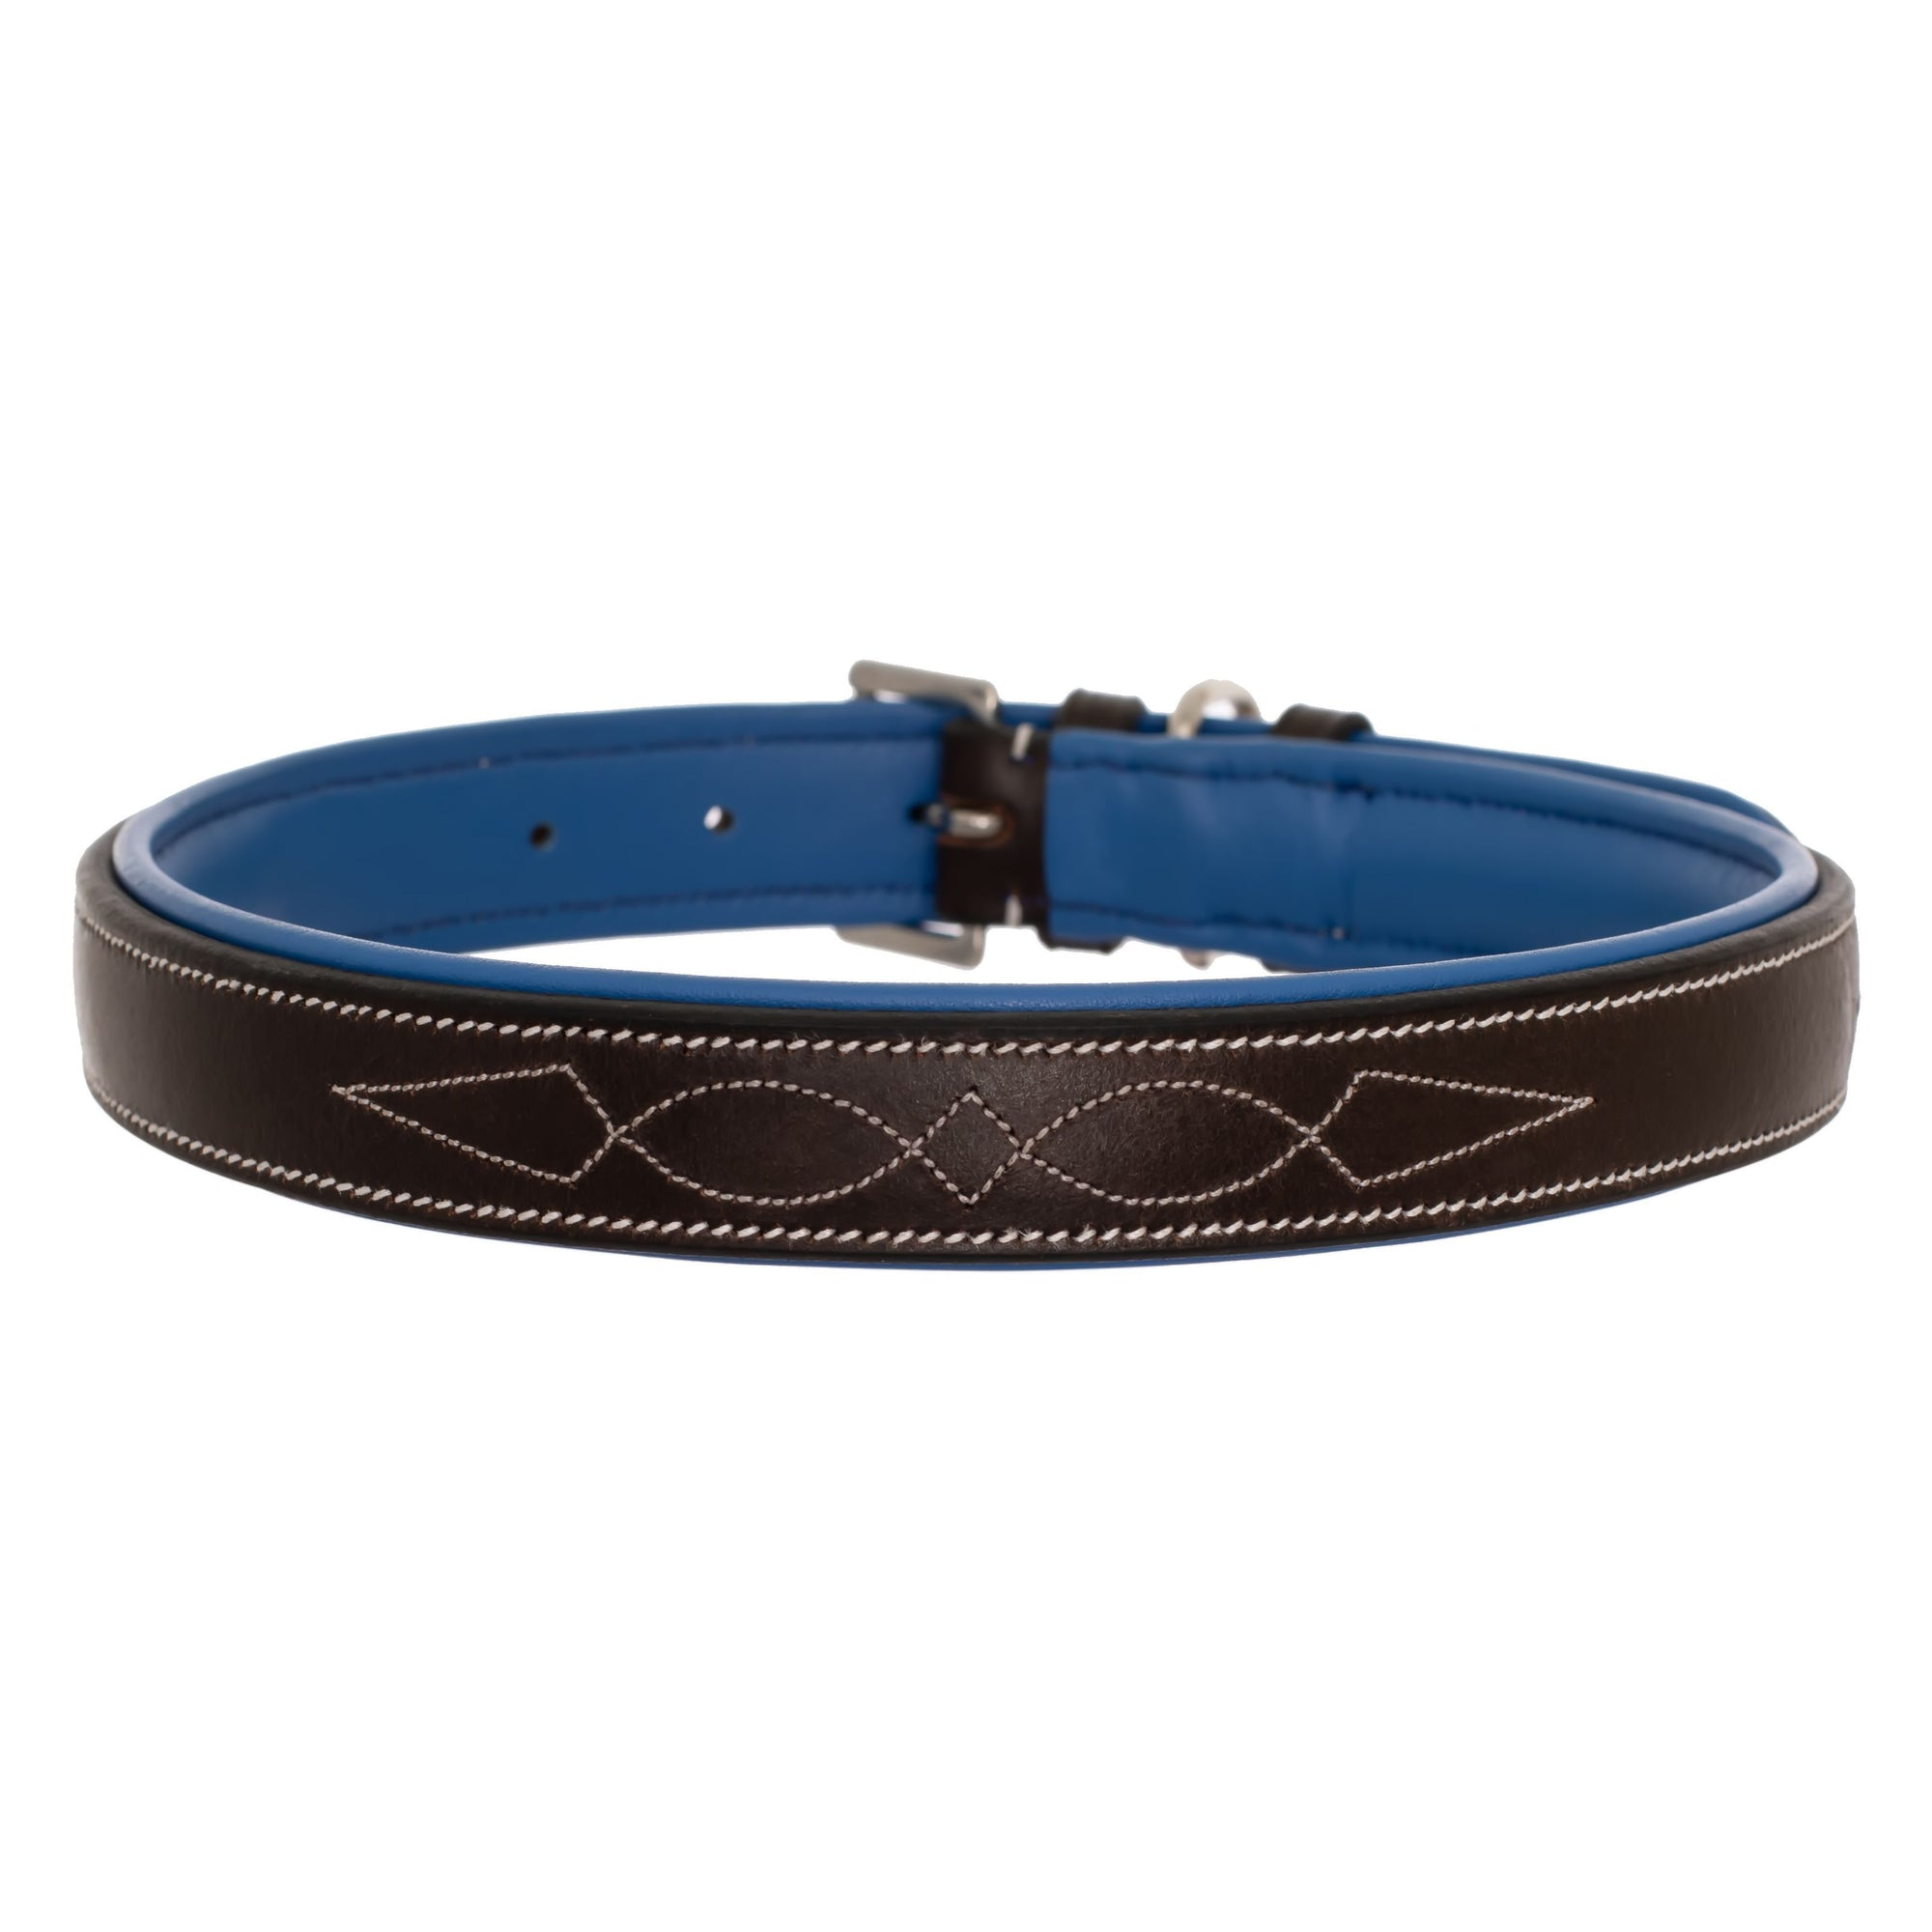 ExionPro Fancy Stitched Padded Leather Dog Collar - Blue Padding-Bridles & Reins